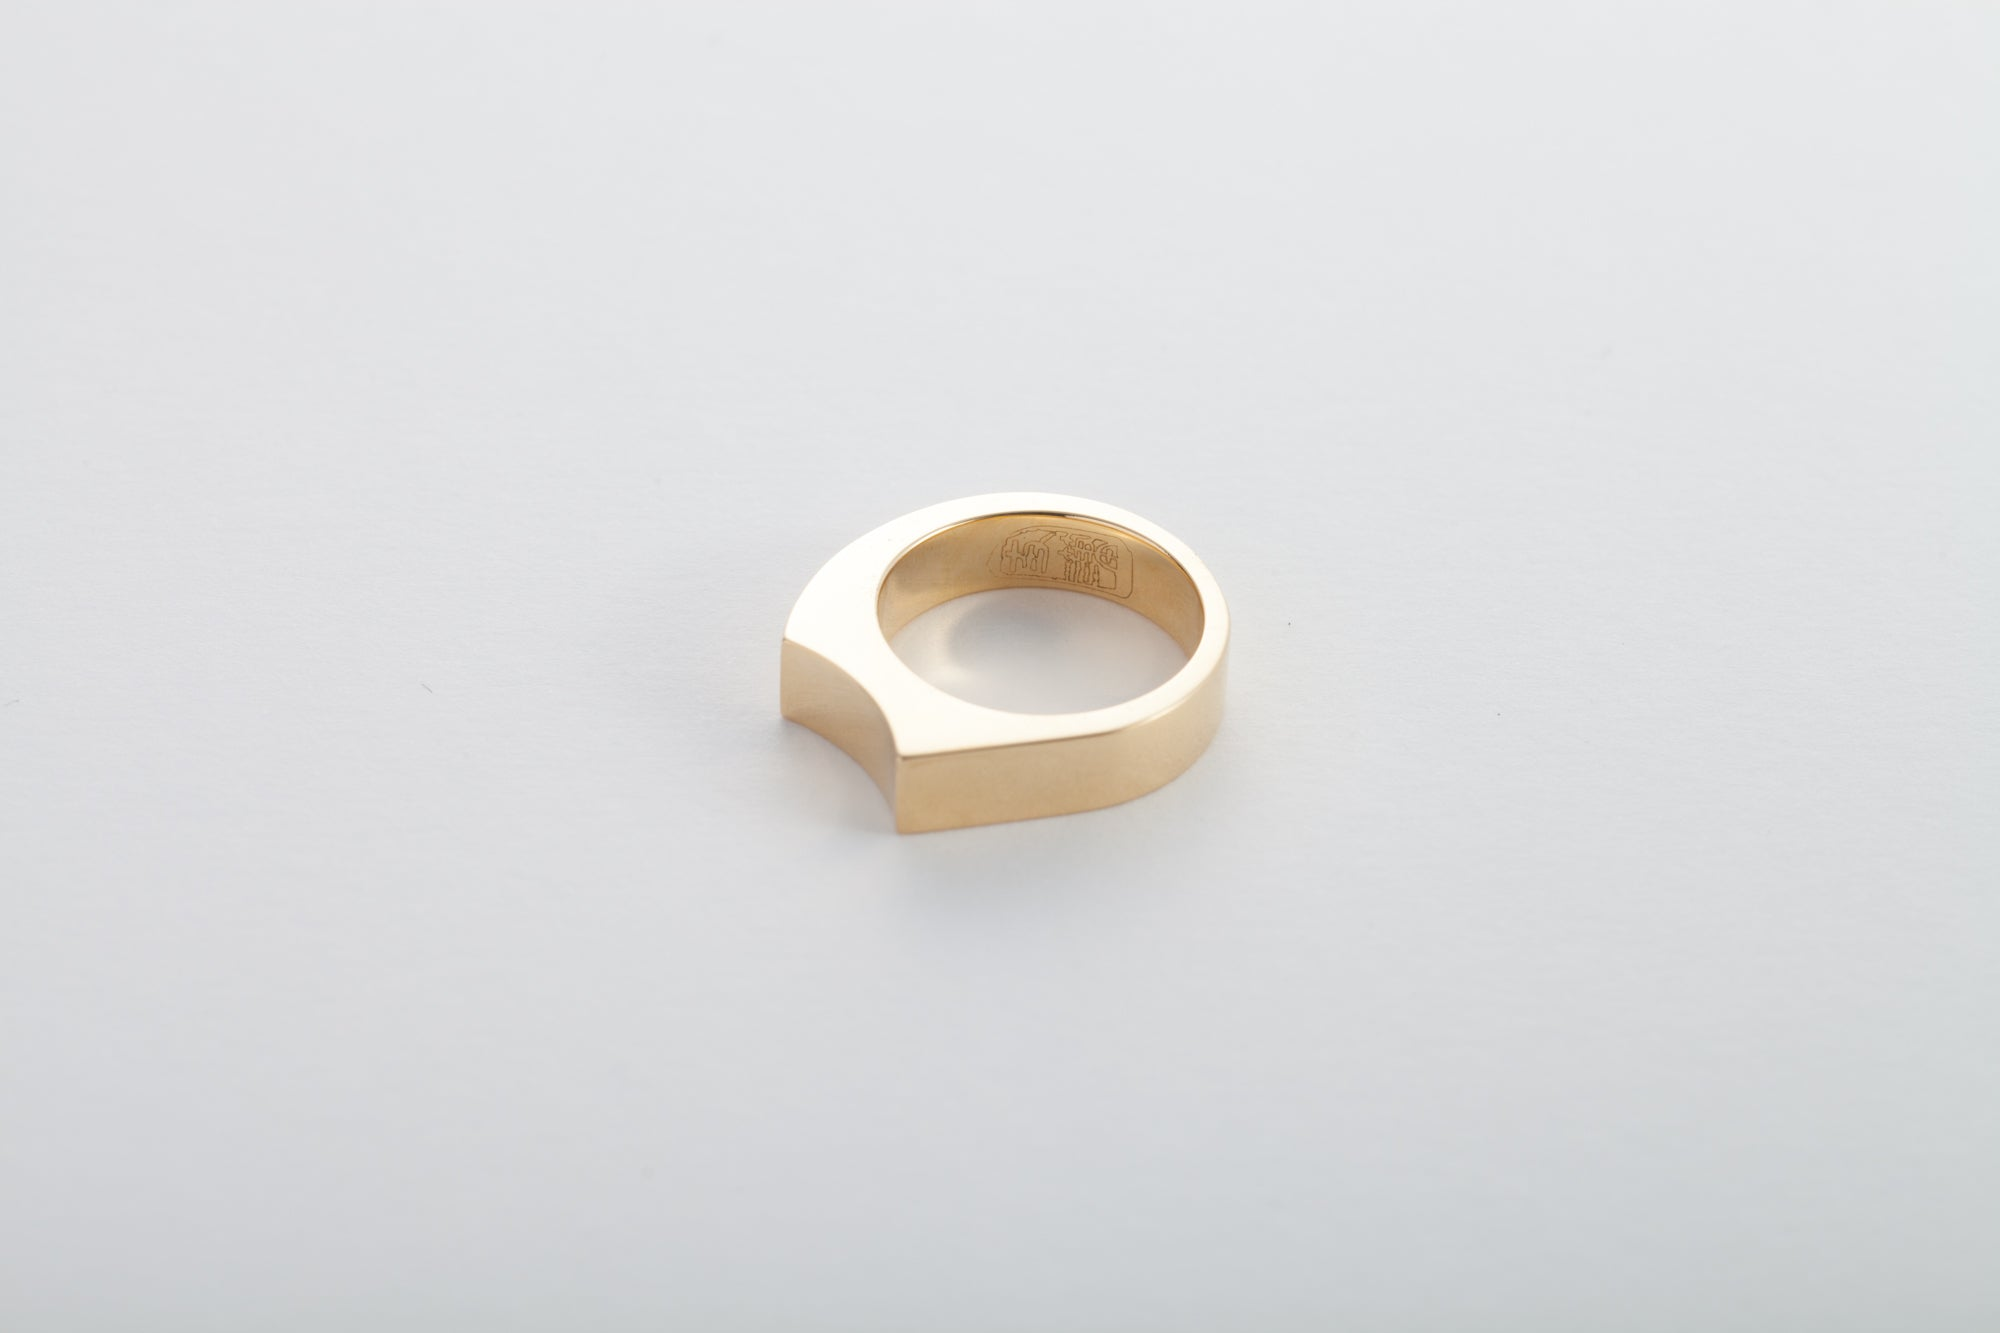 18k Full Saddle Gold Ring